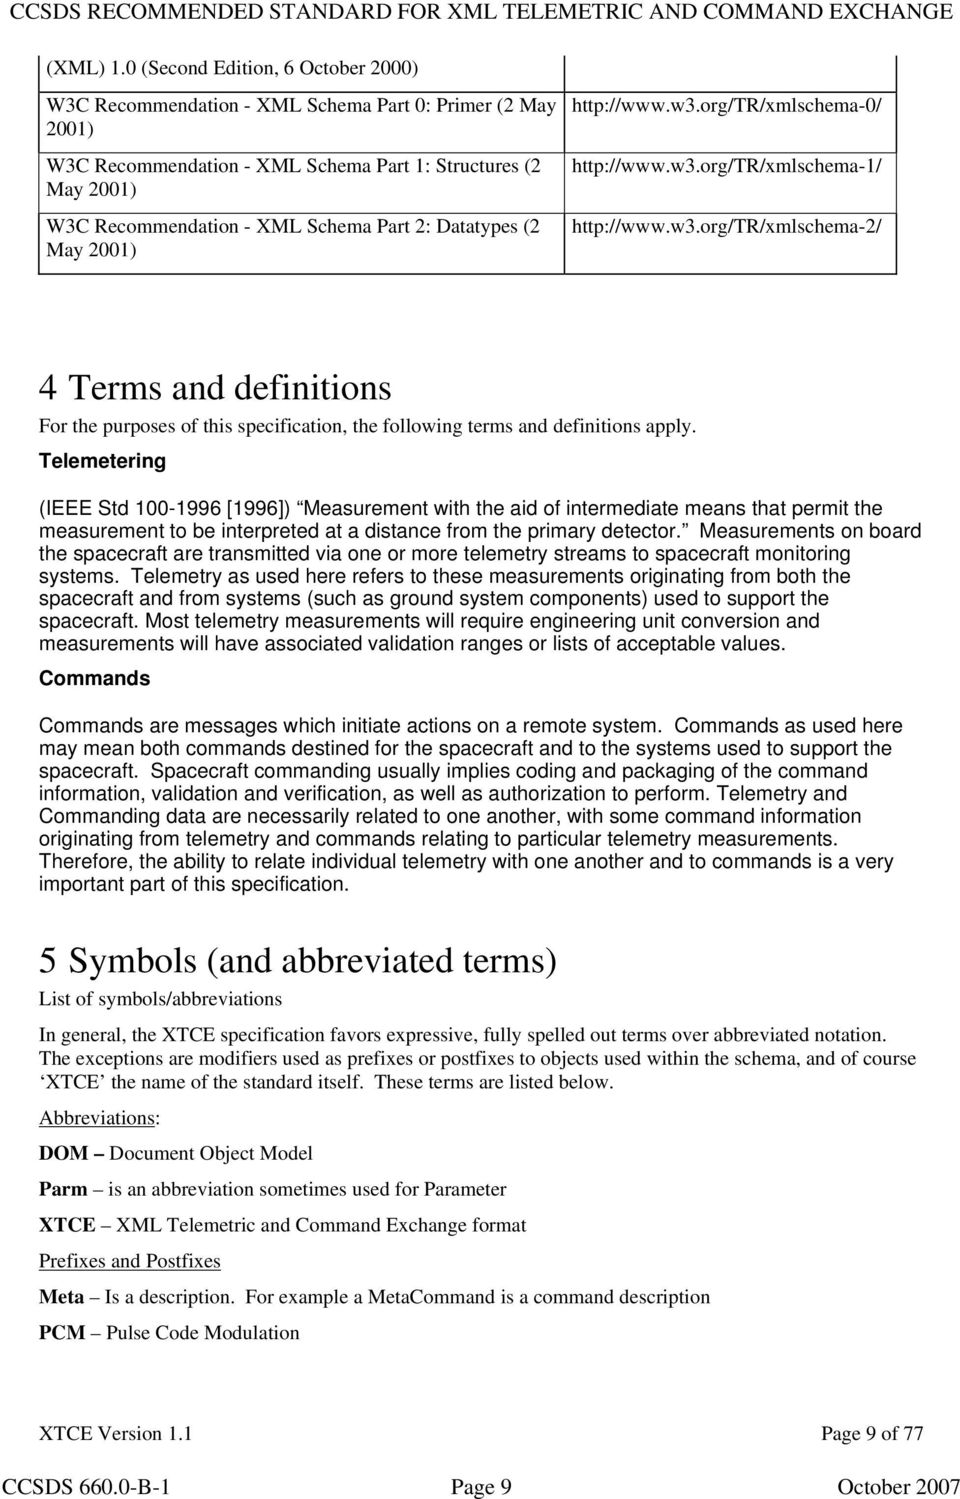 Datatypes (2 May 2001) http://www.w3.org/tr/xmlschema-0/ http://www.w3.org/tr/xmlschema-1/ http://www.w3.org/tr/xmlschema-2/ 4 Terms and definitions For the purposes of this specification, the following terms and definitions apply.